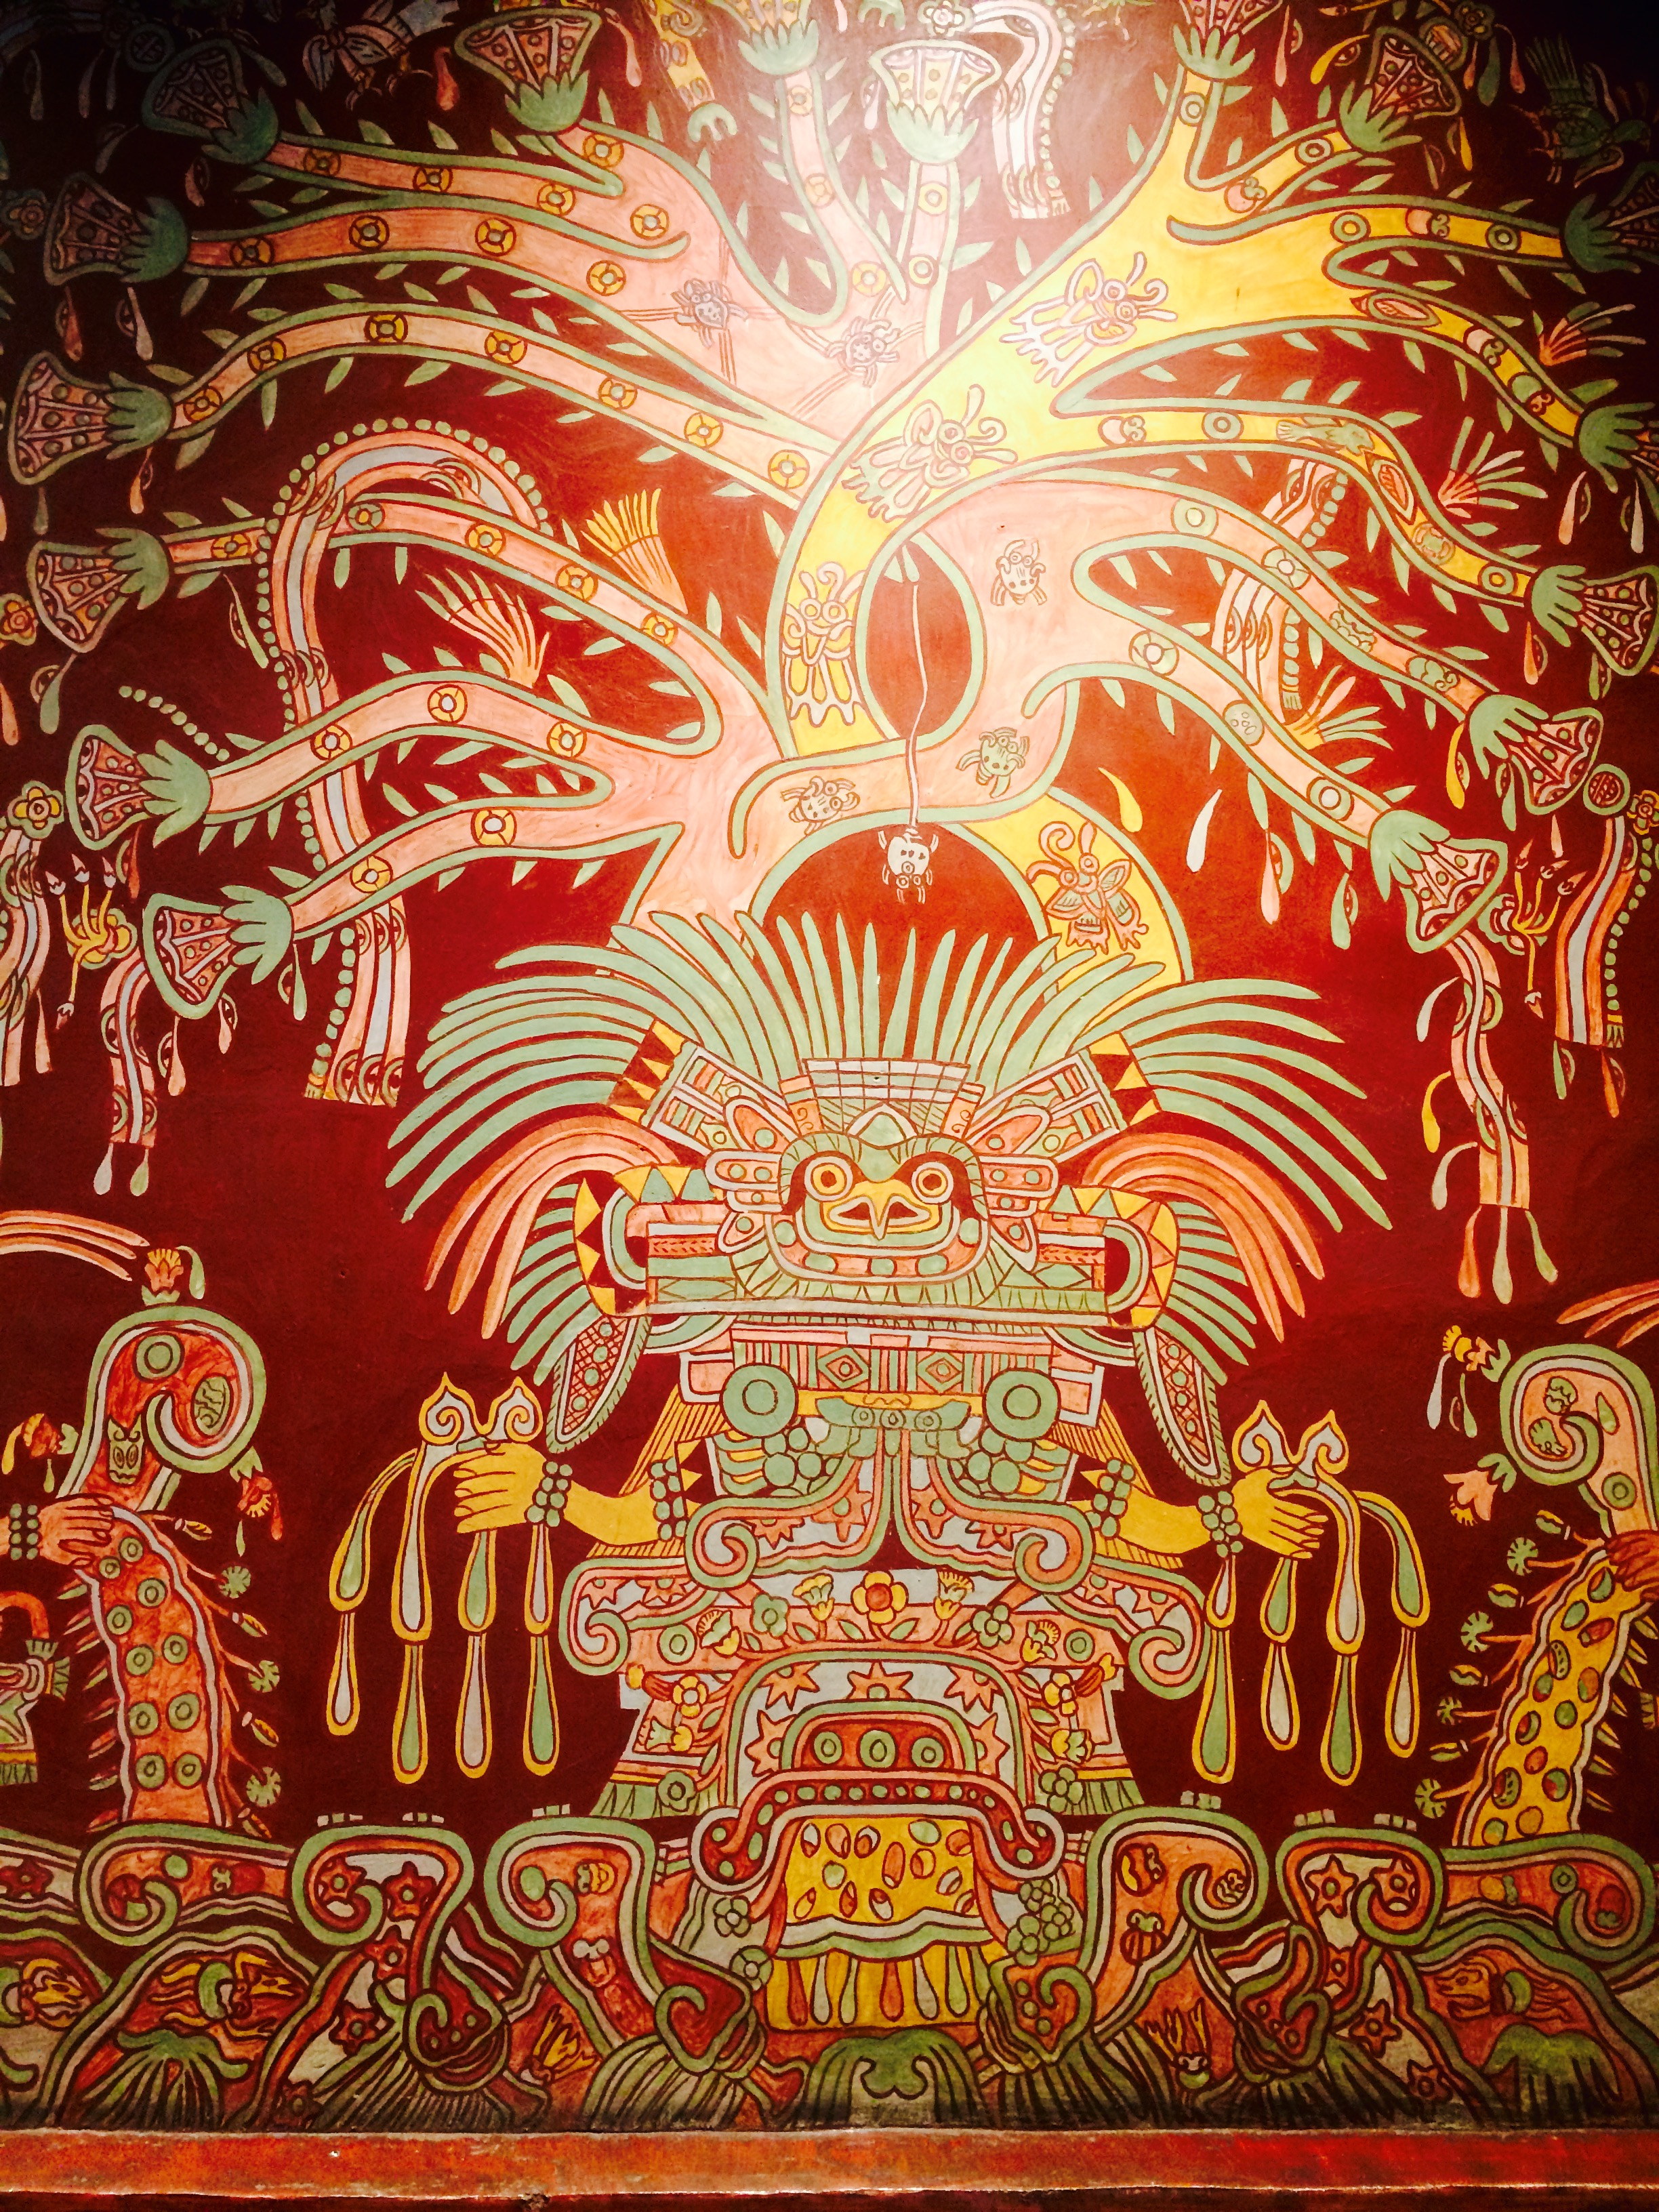 This mural from National Museum of Anthropology of the feathered serpent is a great example of what the pyramids used to look like when freshly painted.